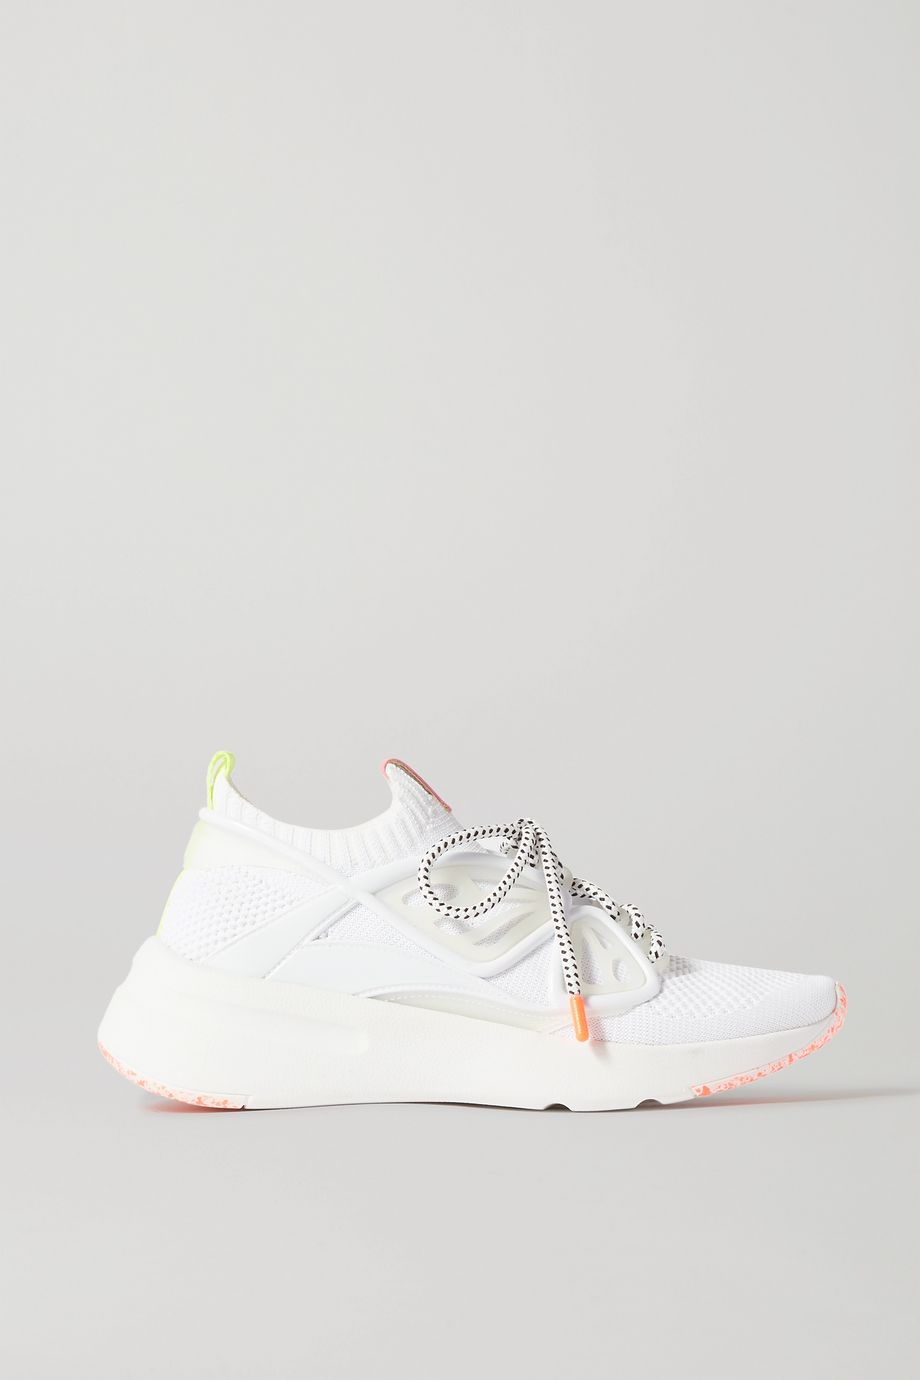 Sophia Webster Leather and rubber-trimmed mesh sneakers